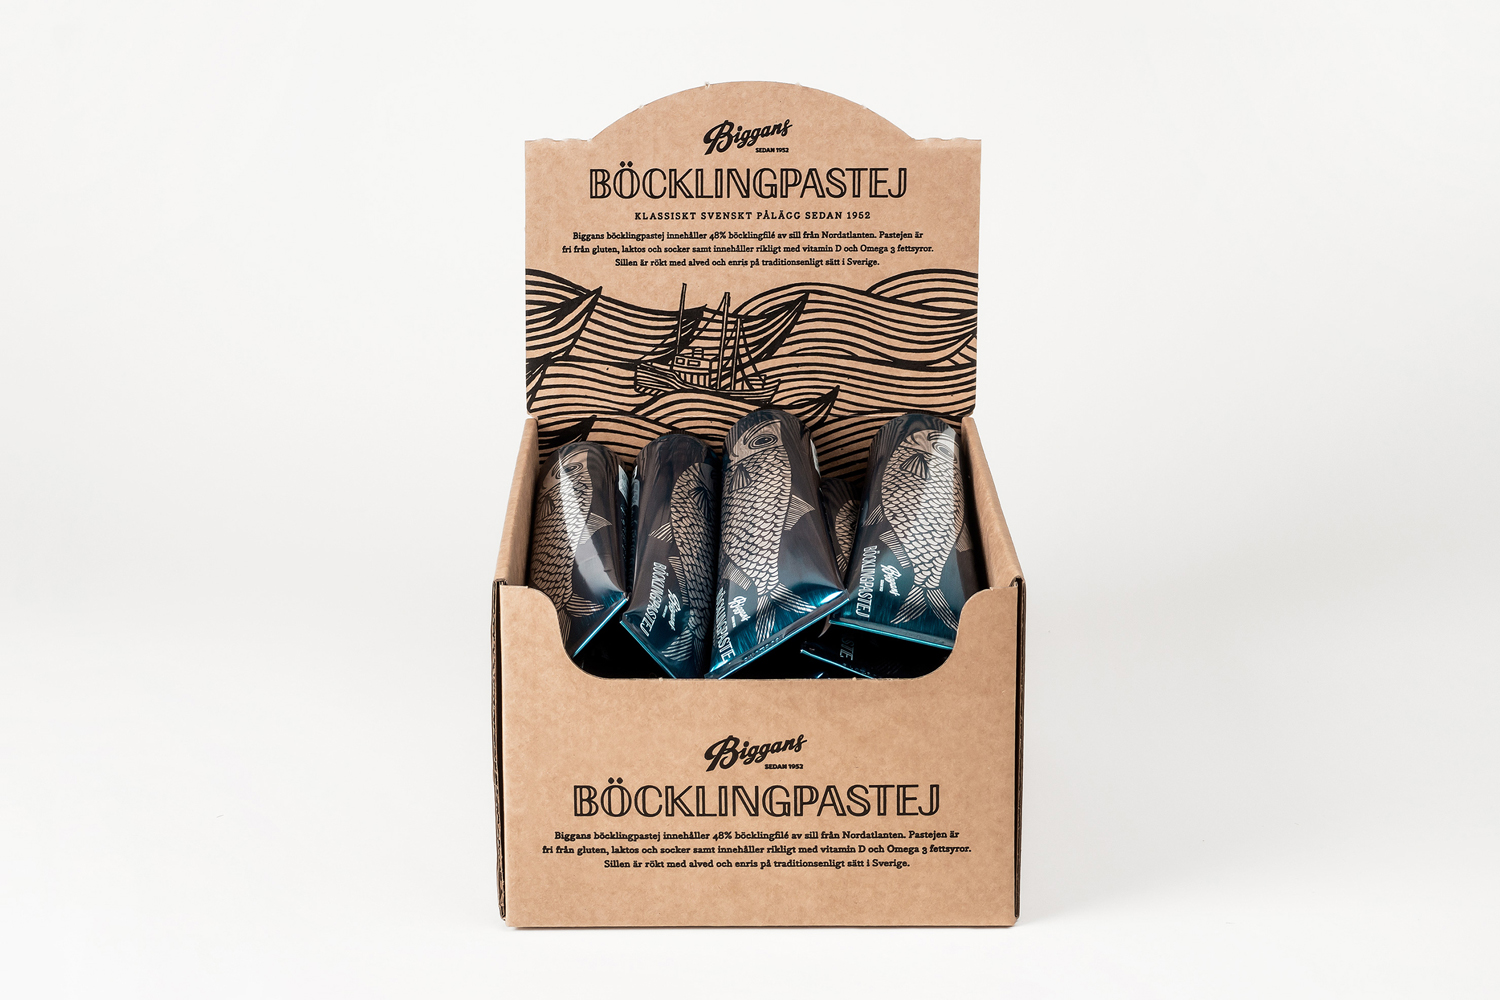 Package design and POS for Biggans Böcklingpastej by Bedow, Sweden